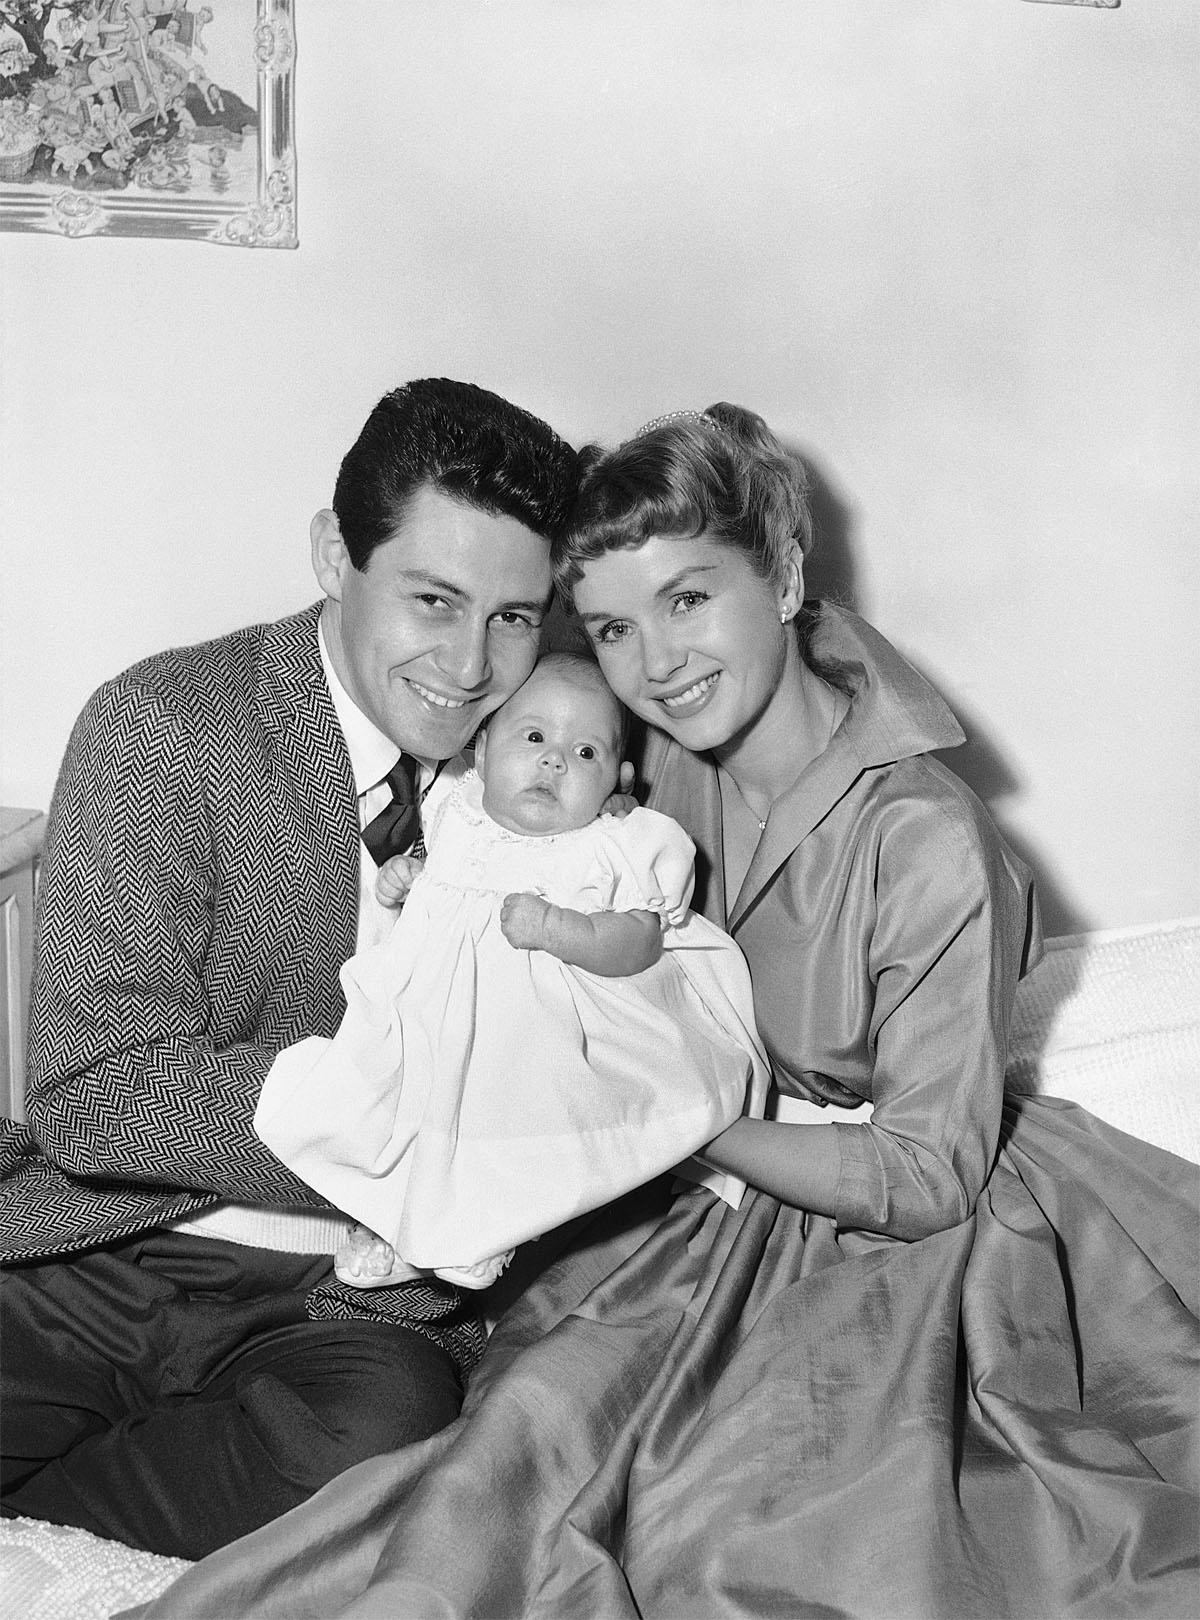 FILE - In this Jan. 2, 1957 file photo, Eddie Fisher and Debbie Reynolds hold their baby daughter, Carrie Frances Fisher, as the pose for a photo in the Hollywood area of Los Angeles. On Tuesday, Dec. 27, 2016, a publicist says Carrie Fisher has died at the age of 60. (AP Photo, File)